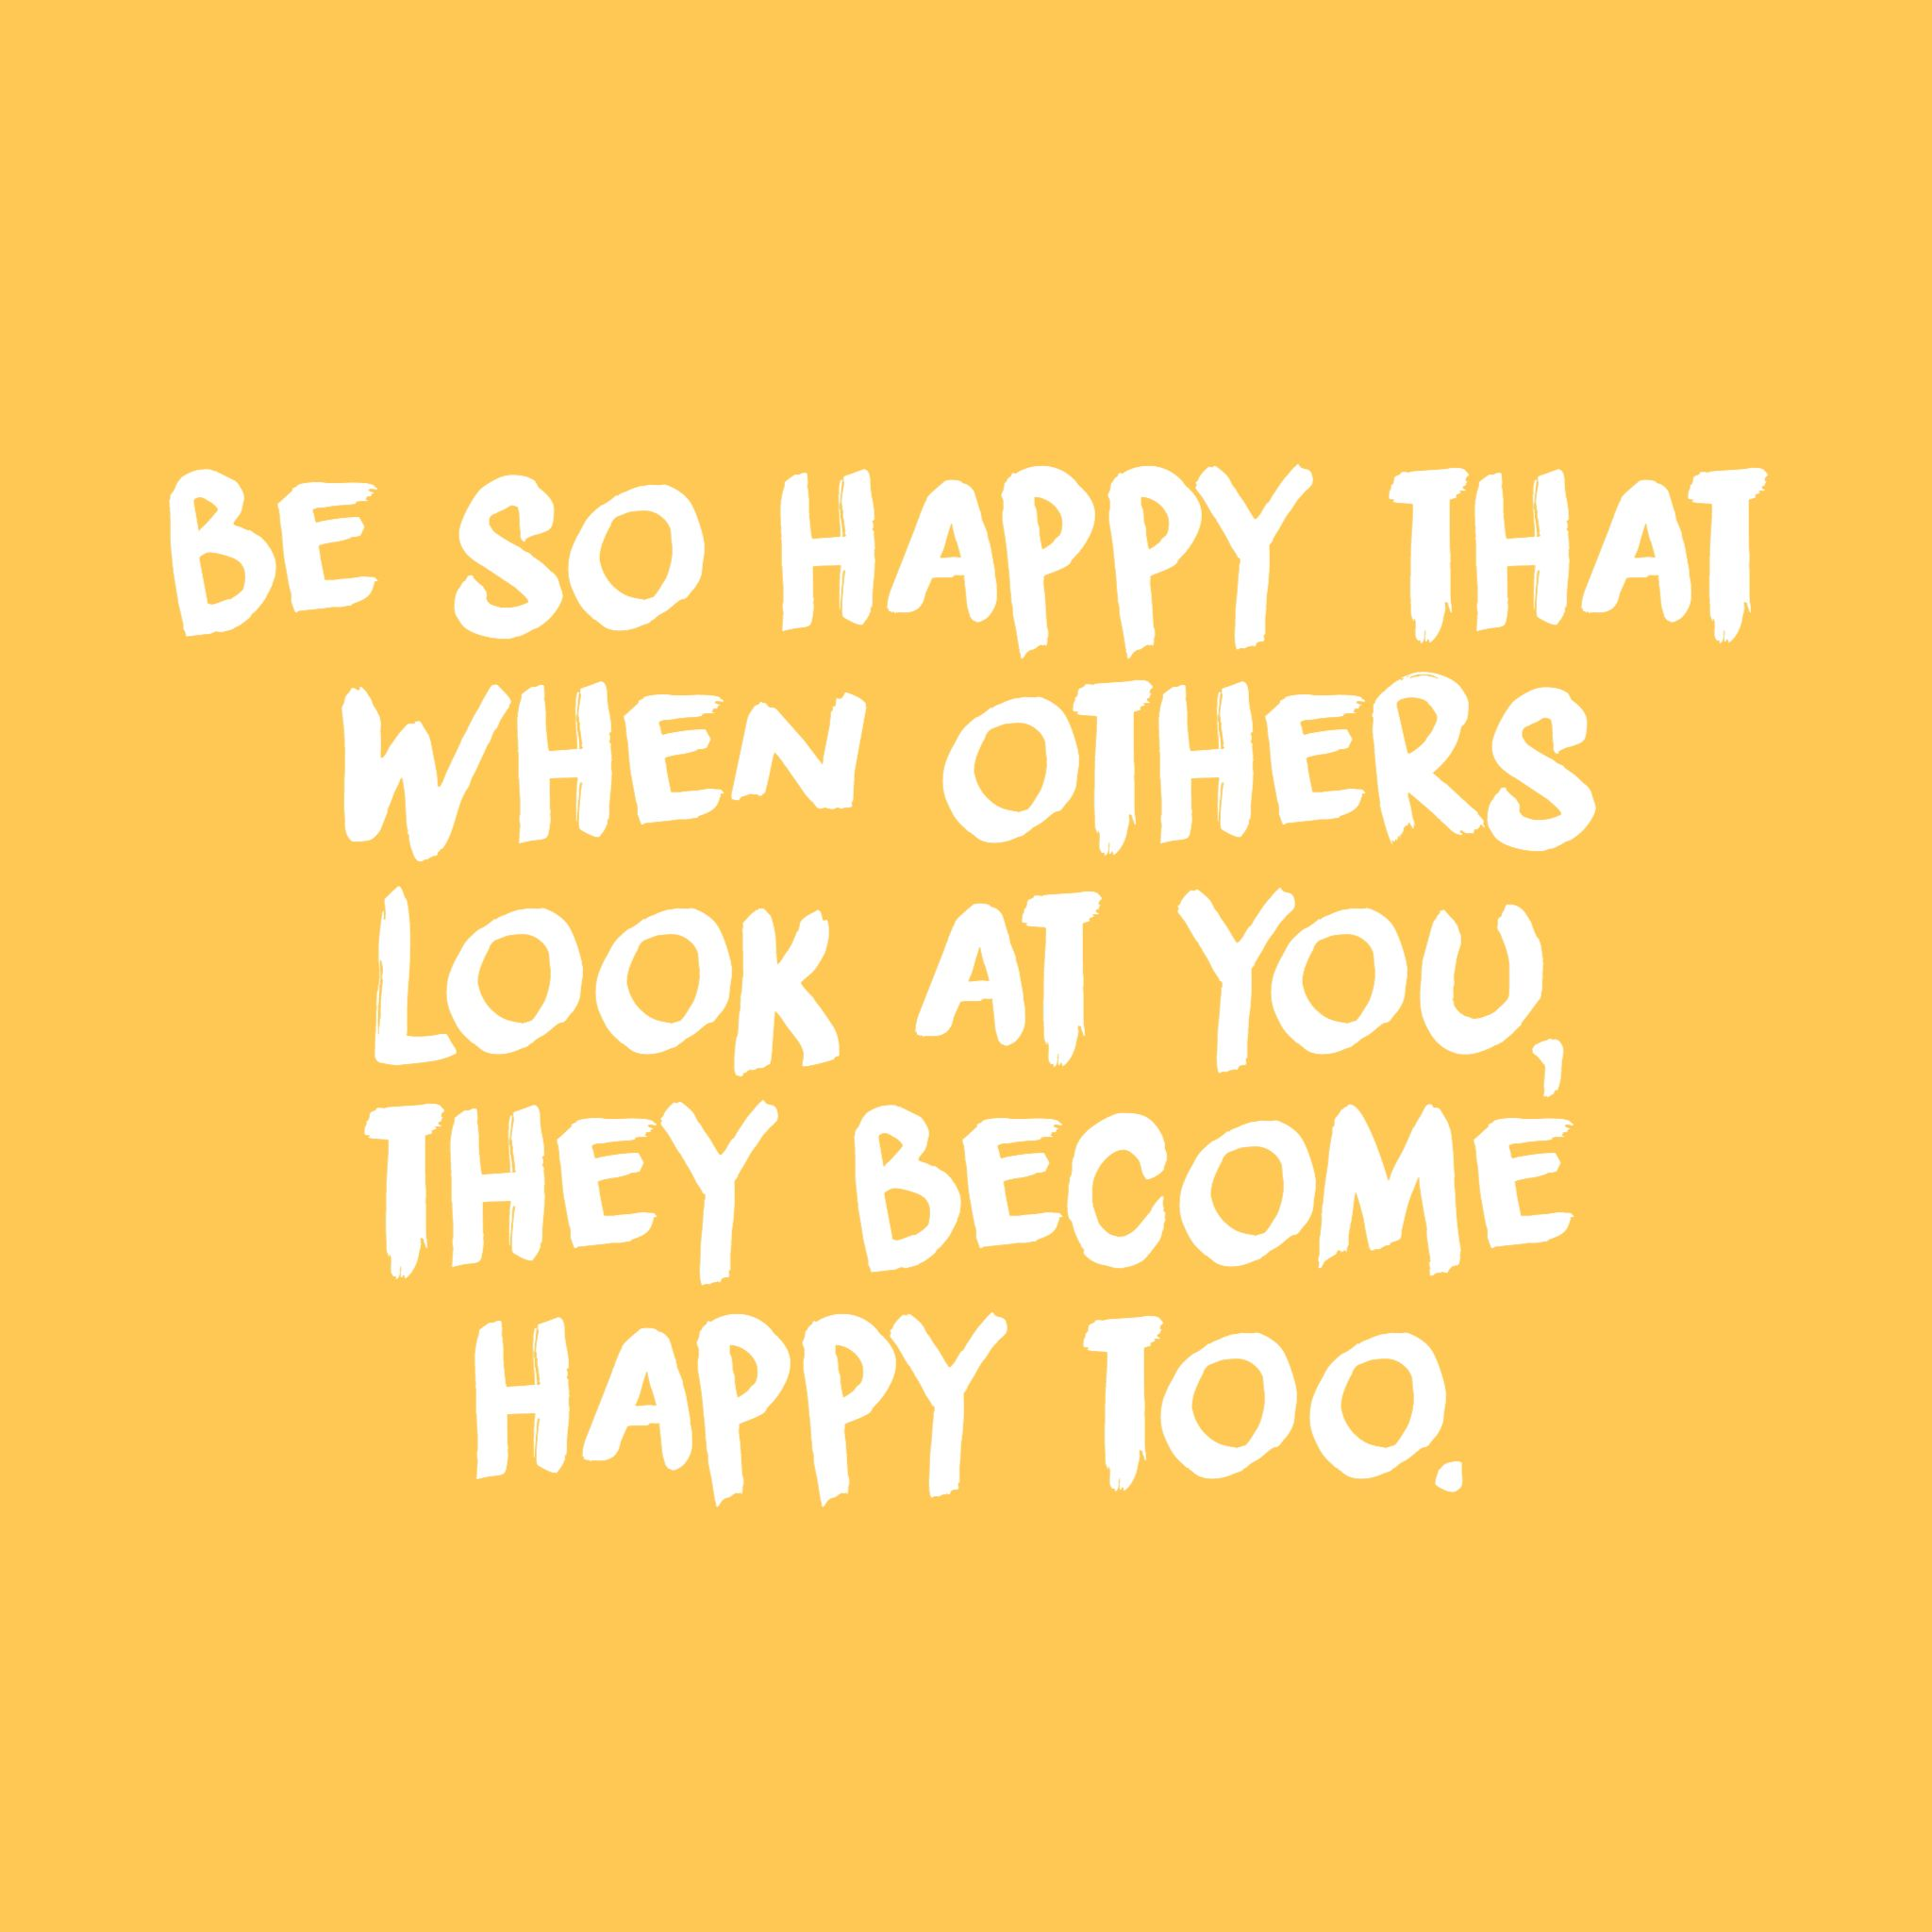 Quotes Happiness Tumblr: Be So Happy That When Others Look At You They Become Happy